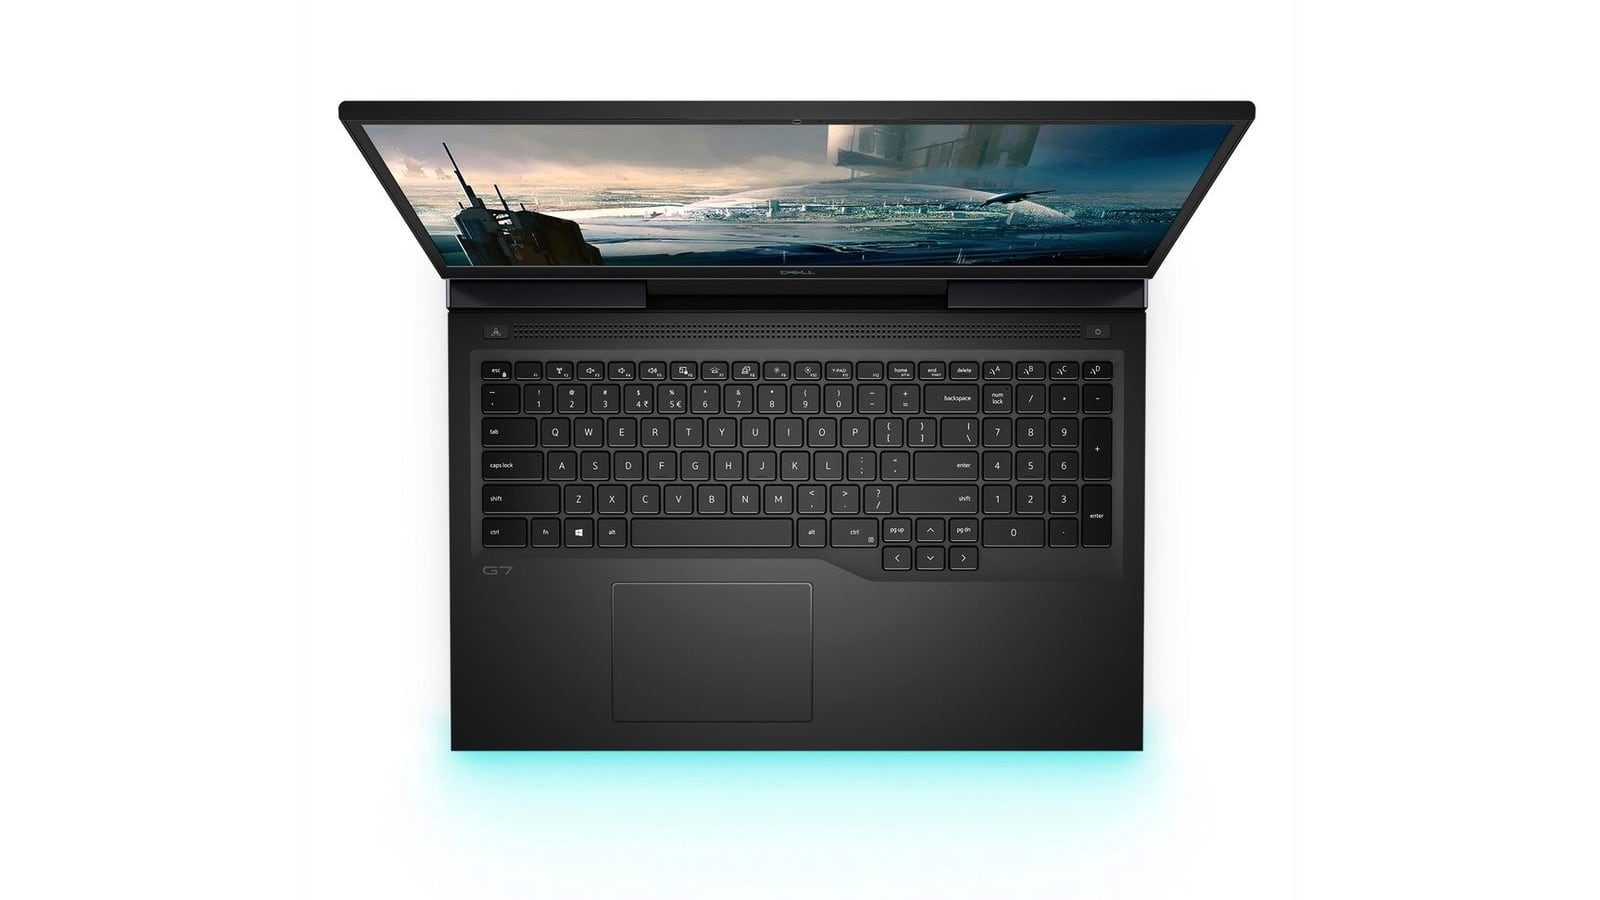 Dell G7 15 Powerful Gaming Laptop stays cool during use